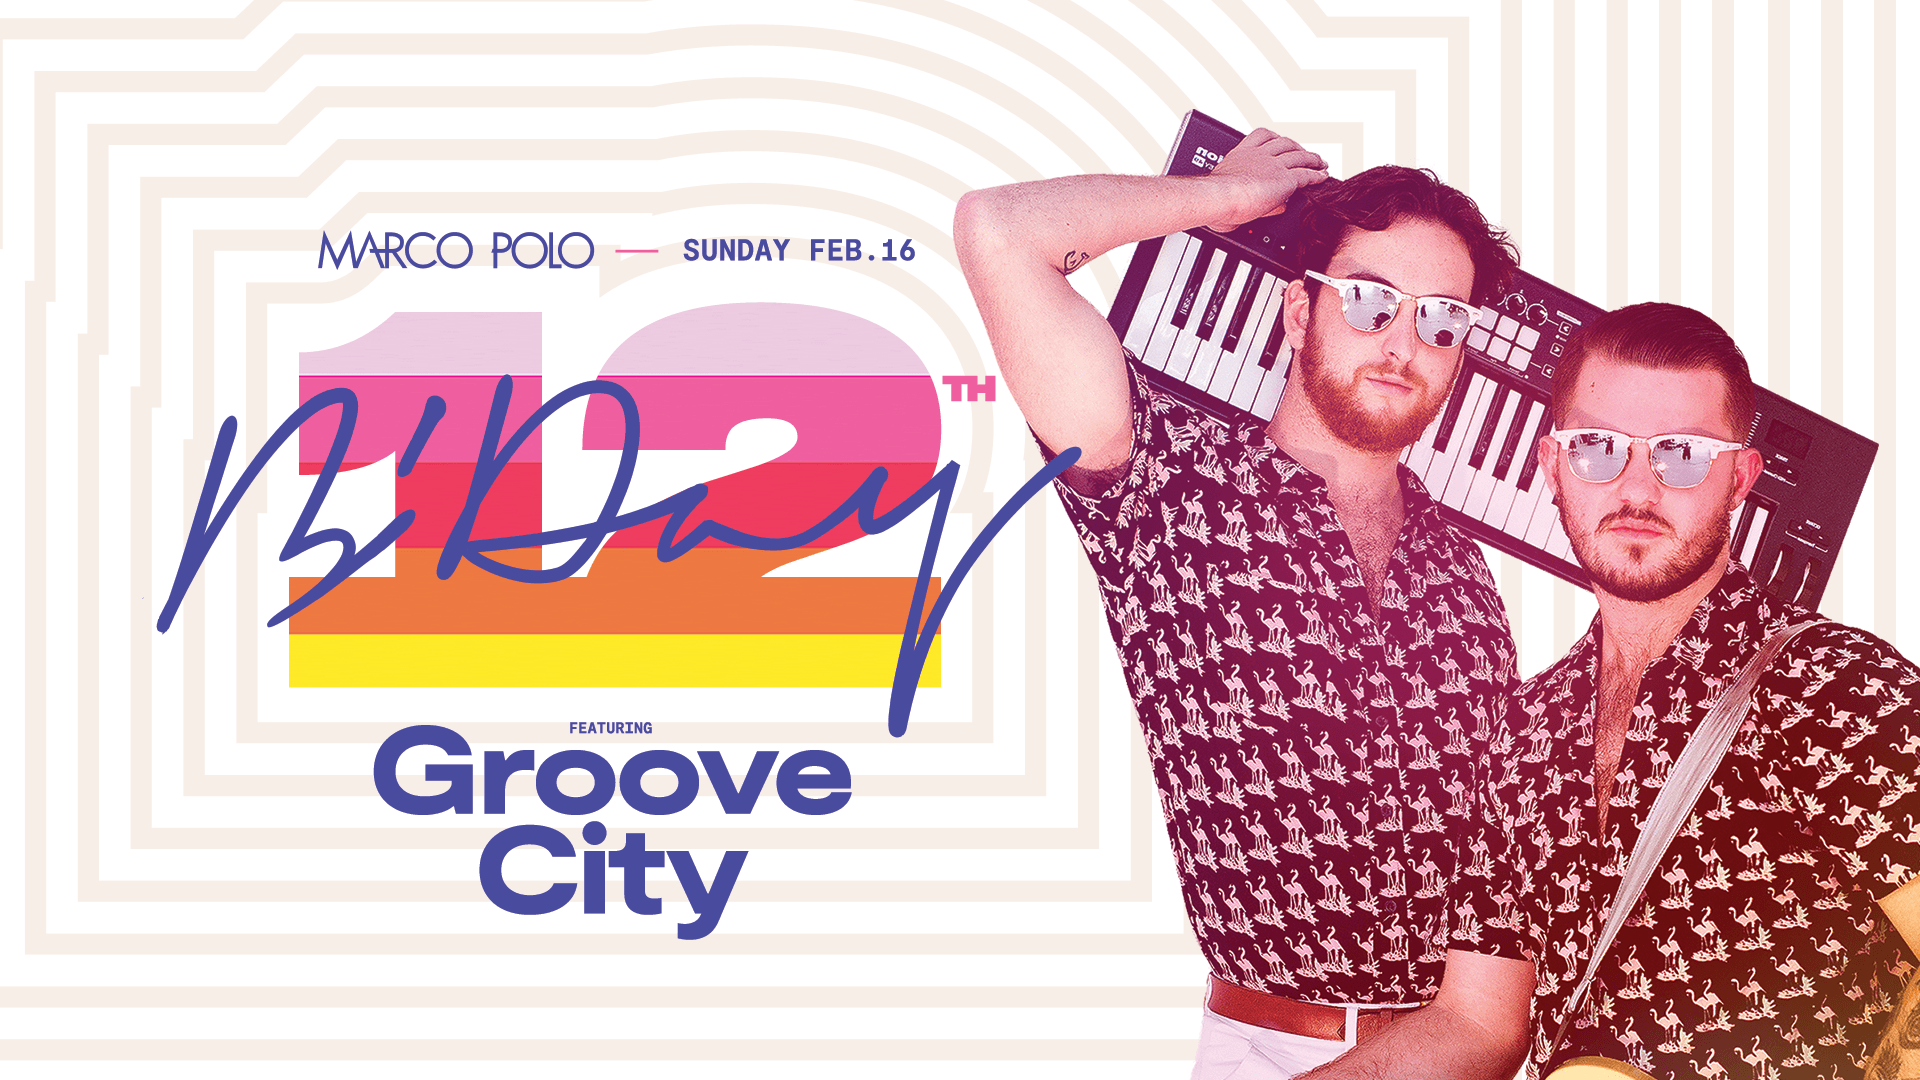 Tickets for Marco Polo's 12th Birthday Party ft. Groove City in Sydney from Merivale